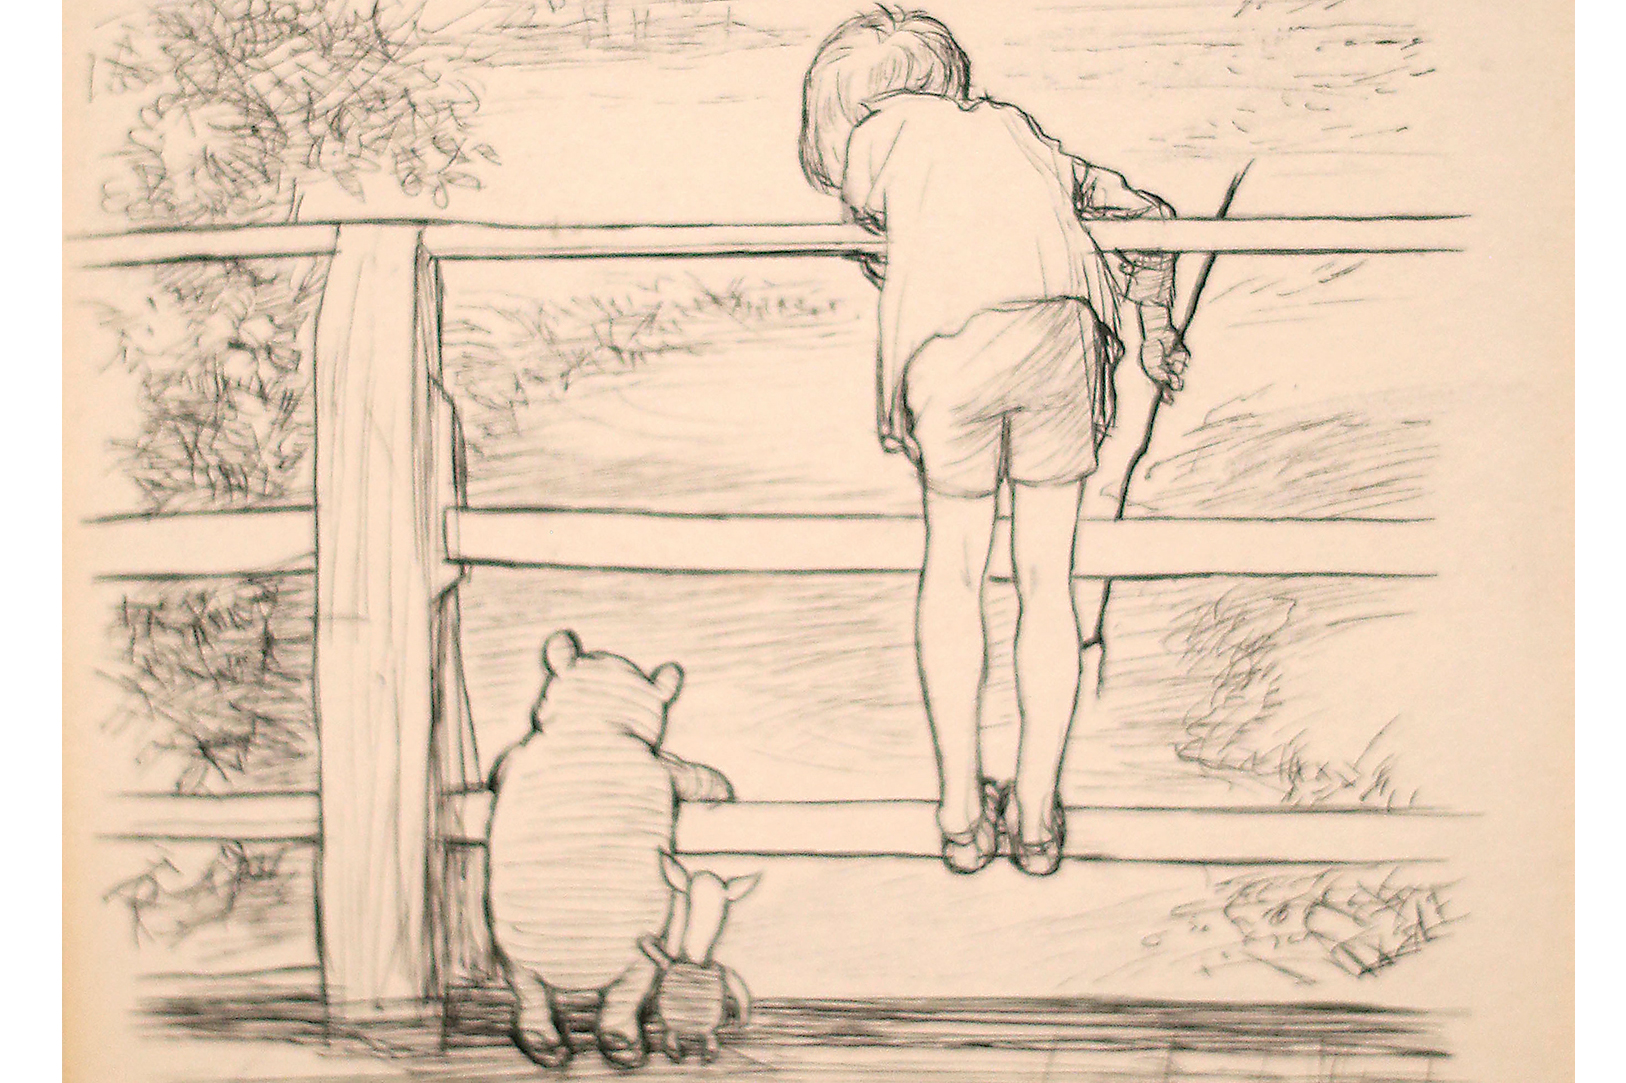 Pooh, Piglet and Christopher Robin